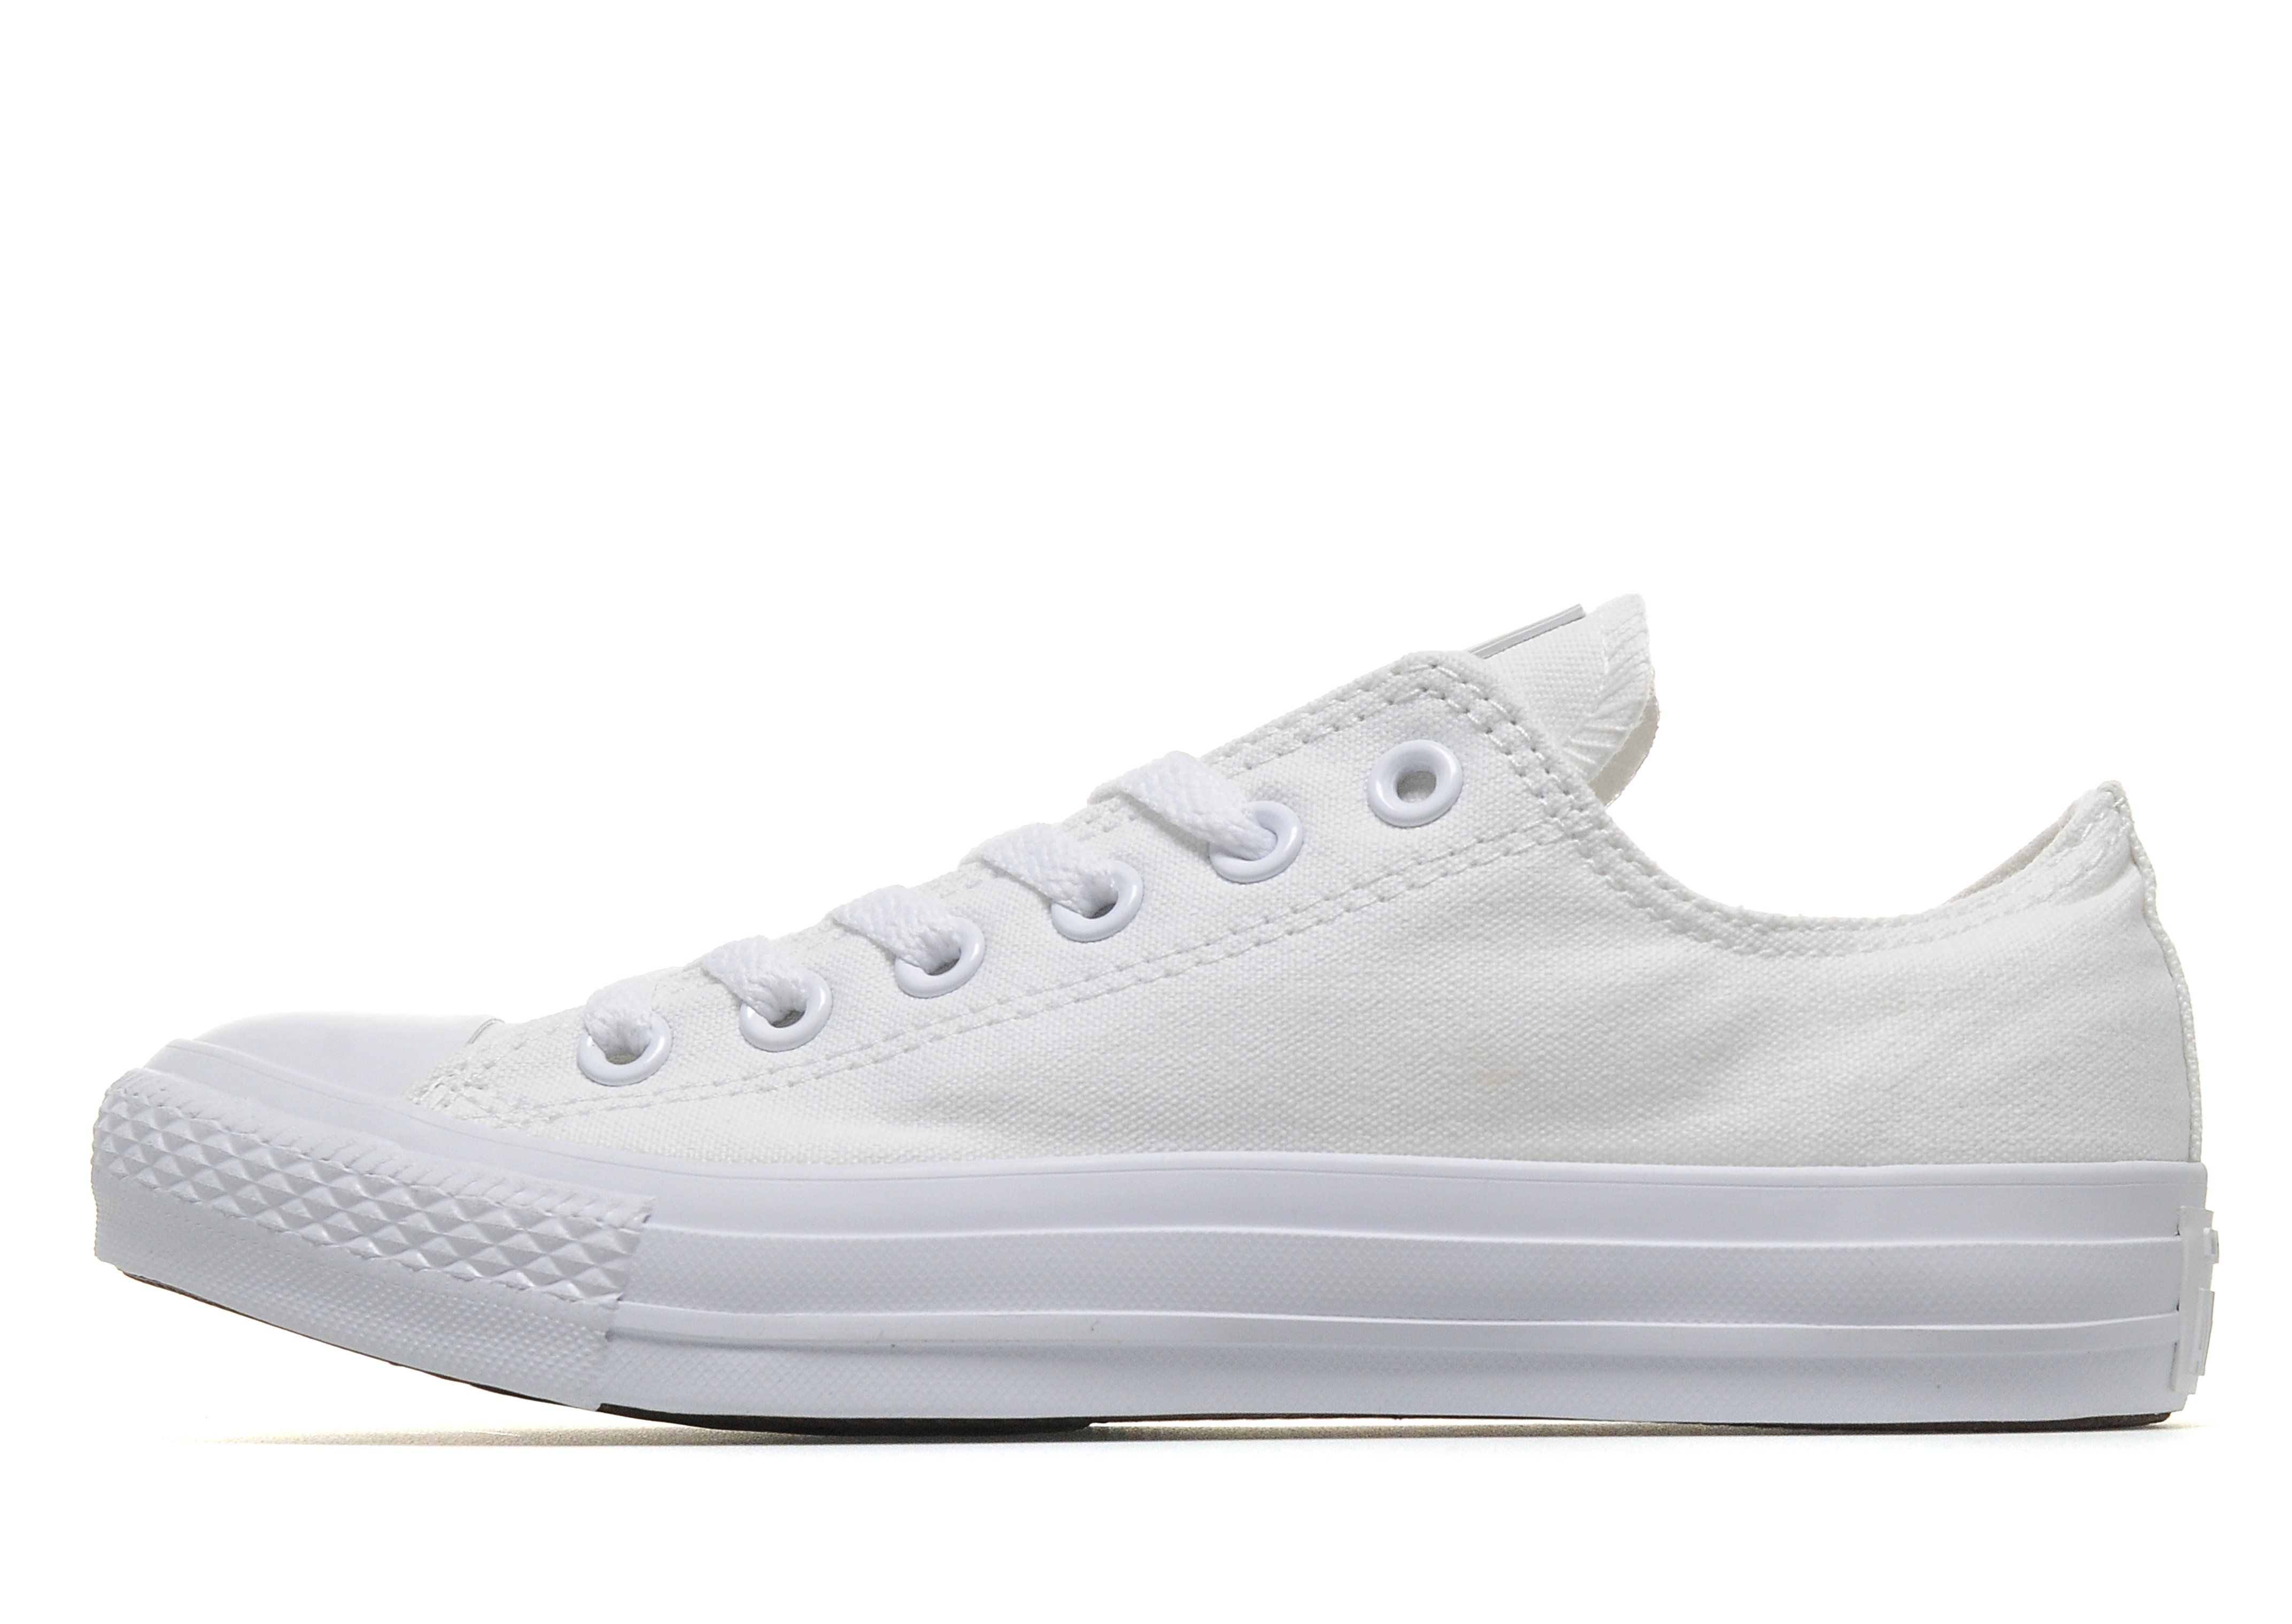 Converse White Shoes : Converse Online Chuck Taylors and